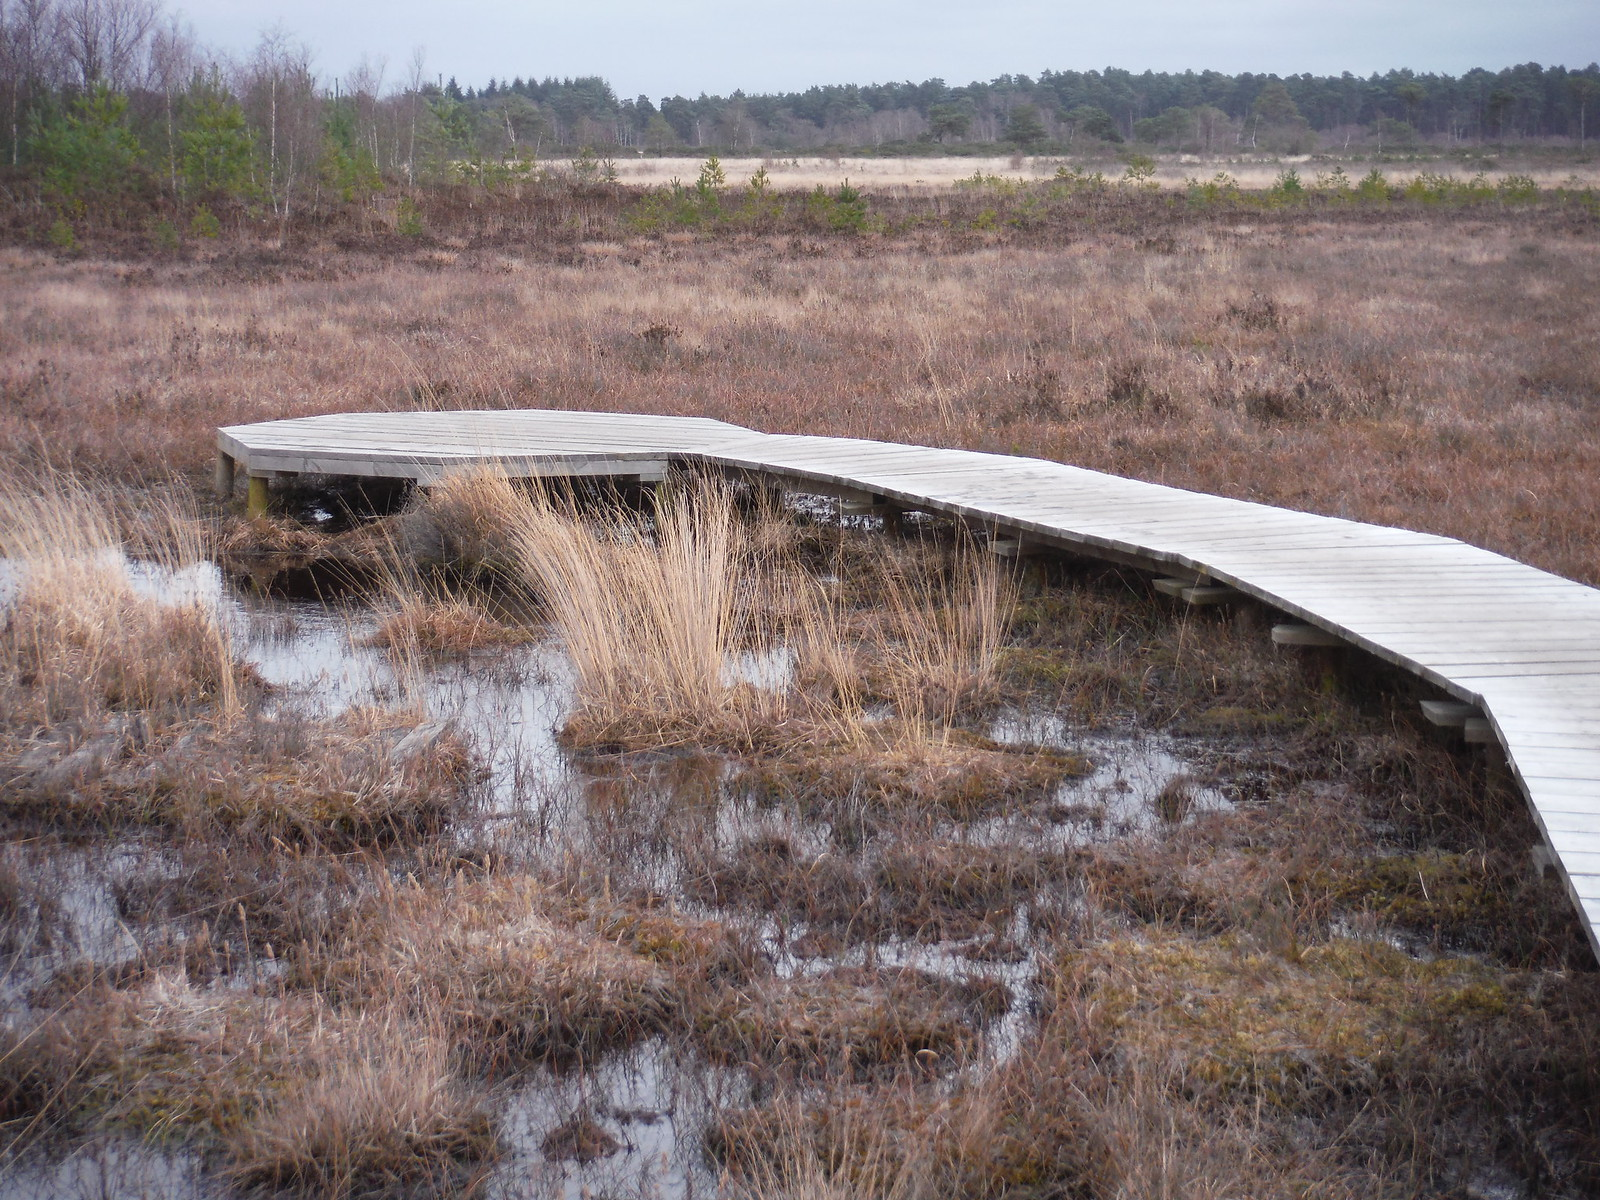 Pine Island Seating and Relaxation Area in Bog, Thursley Common SWC Walk 144 Haslemere to Farnham - Thursley Common Extension (Pudmore Pond Extension-within-the-Extension)